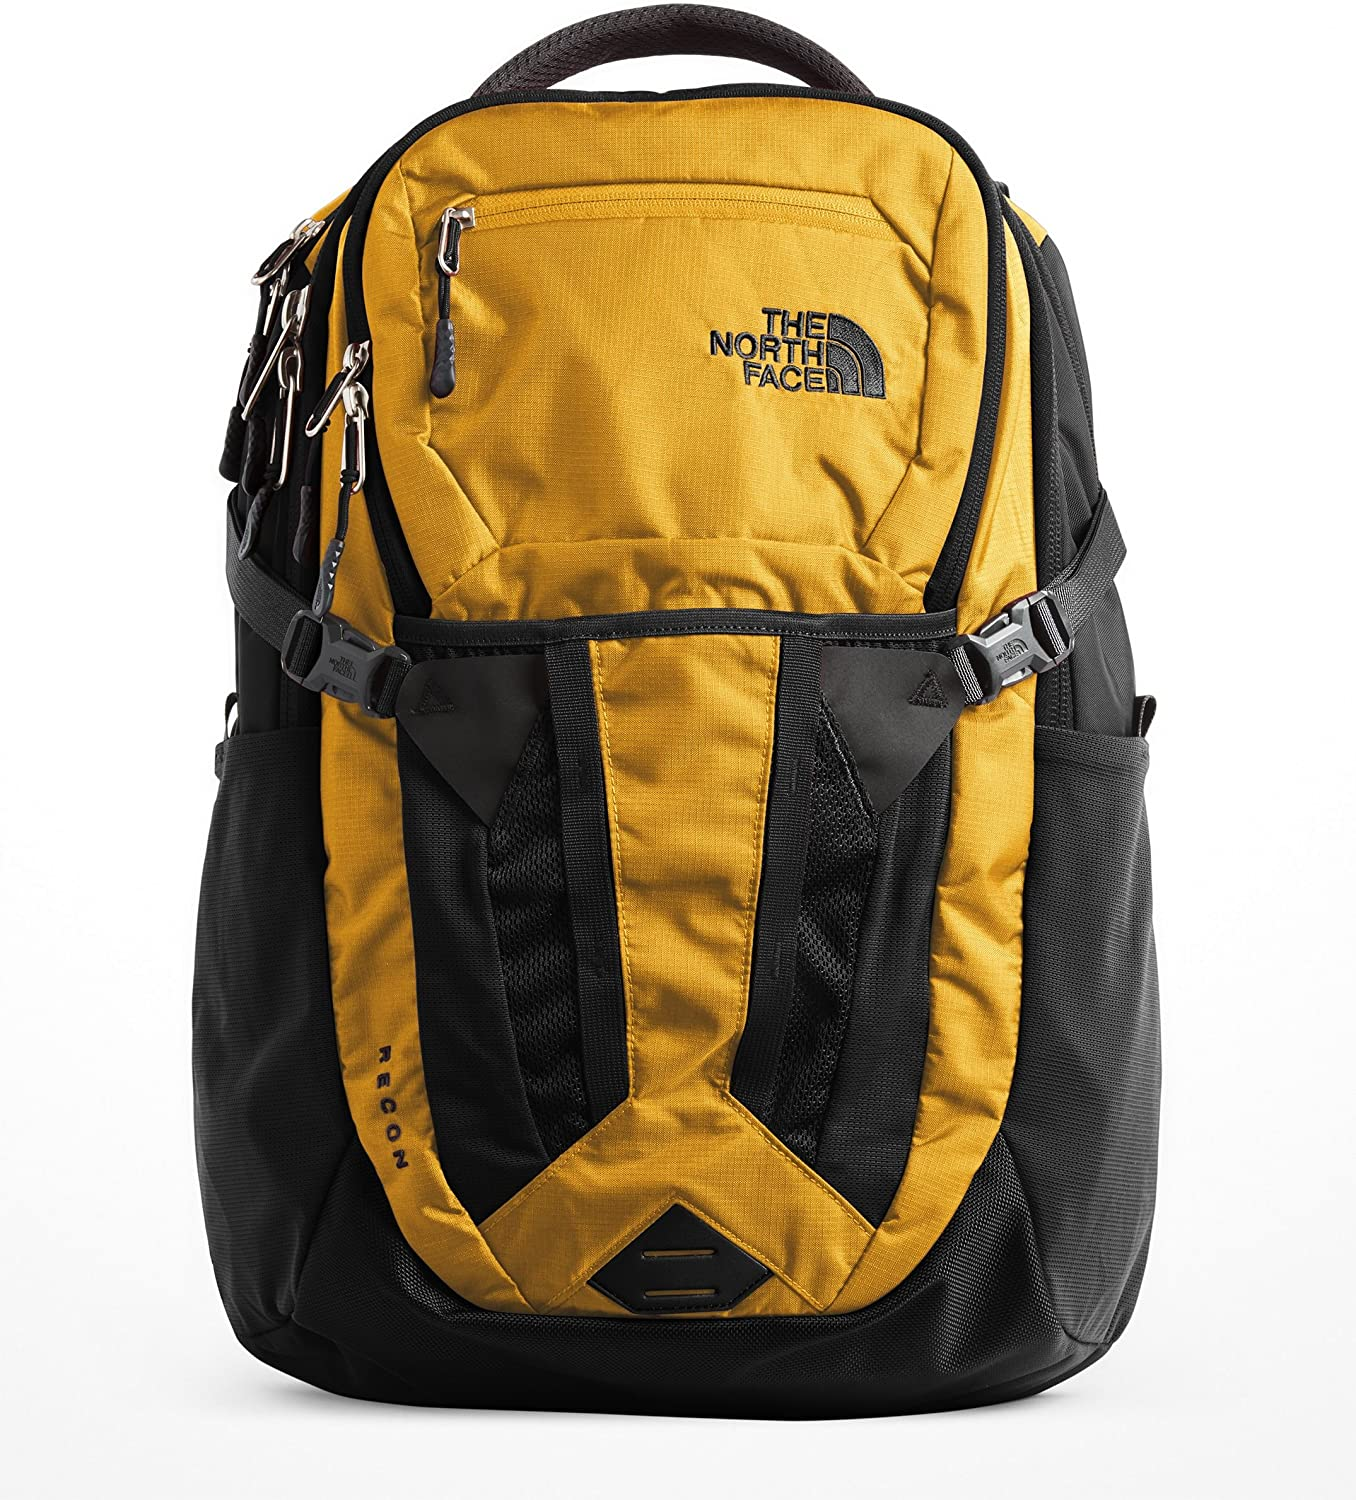 The North Face Unisex Recon